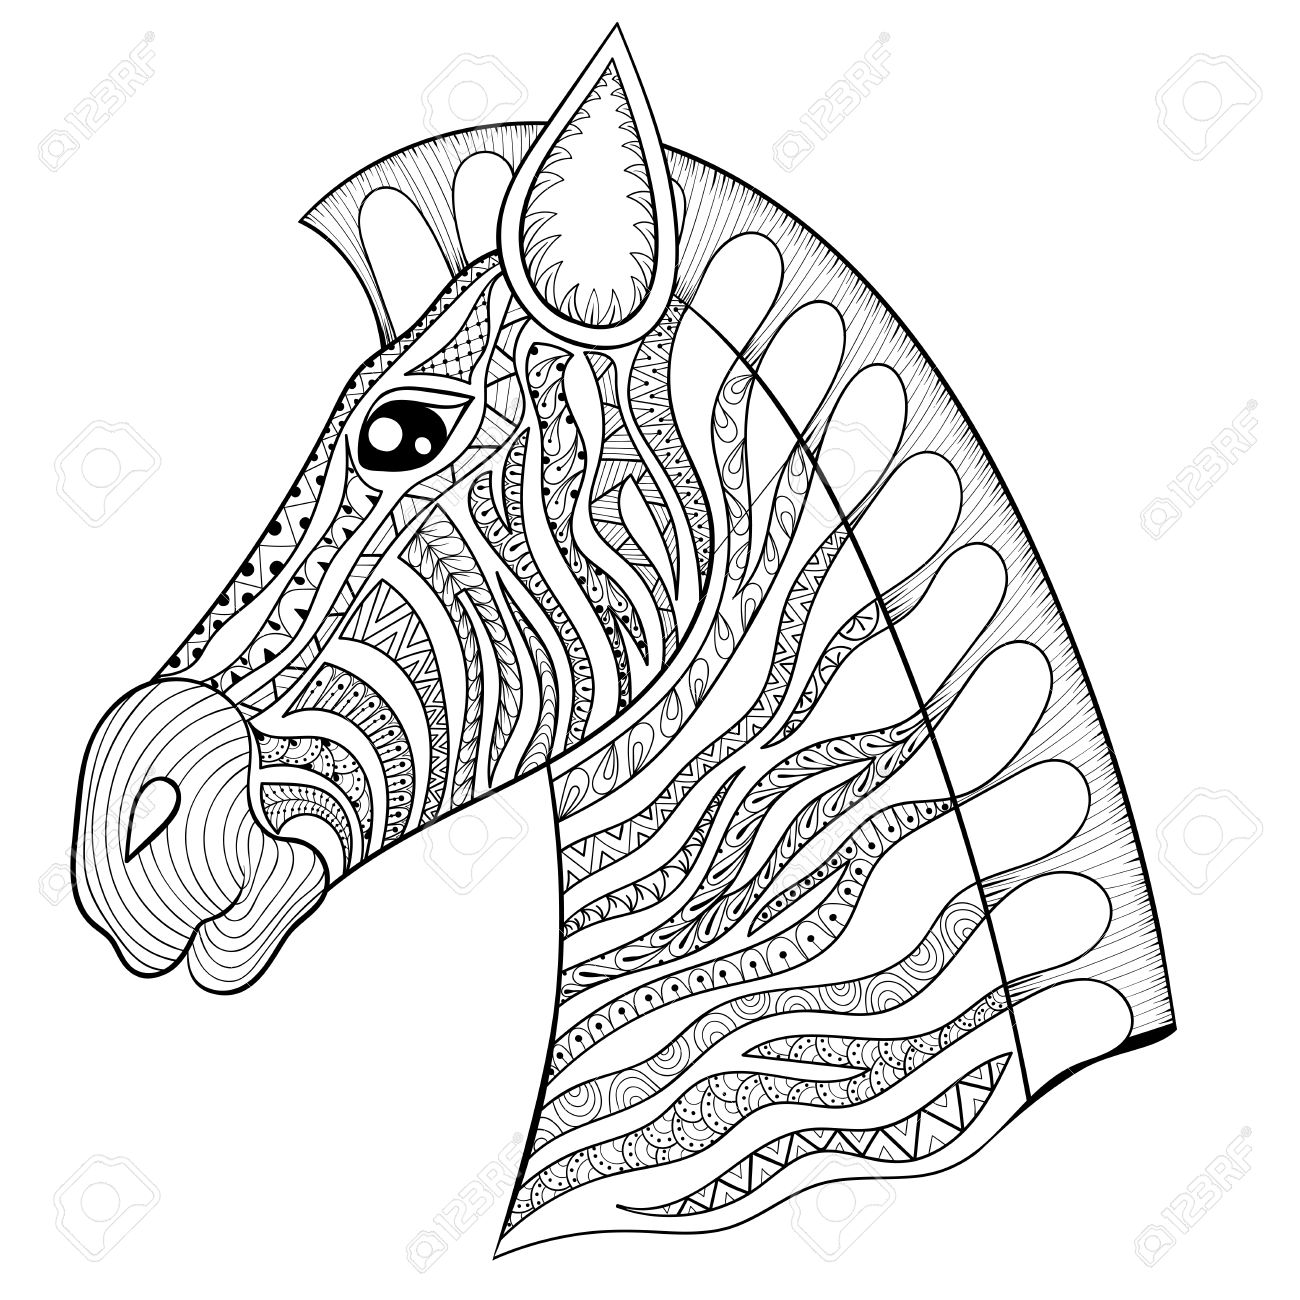 vector zentangle zebra head illustration horse print for